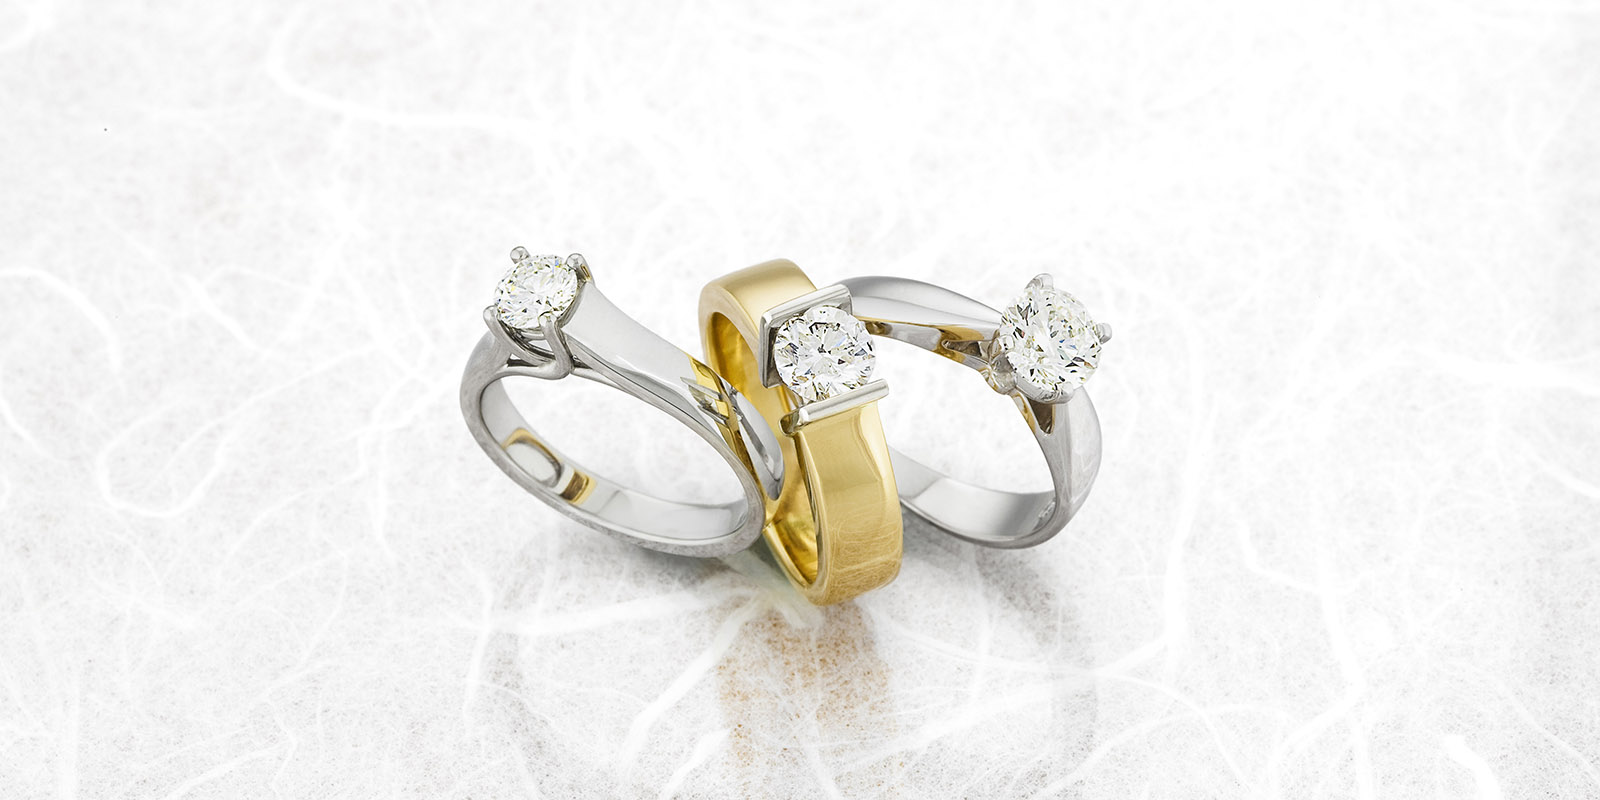 Three Engagement Rings on Reflective Surface